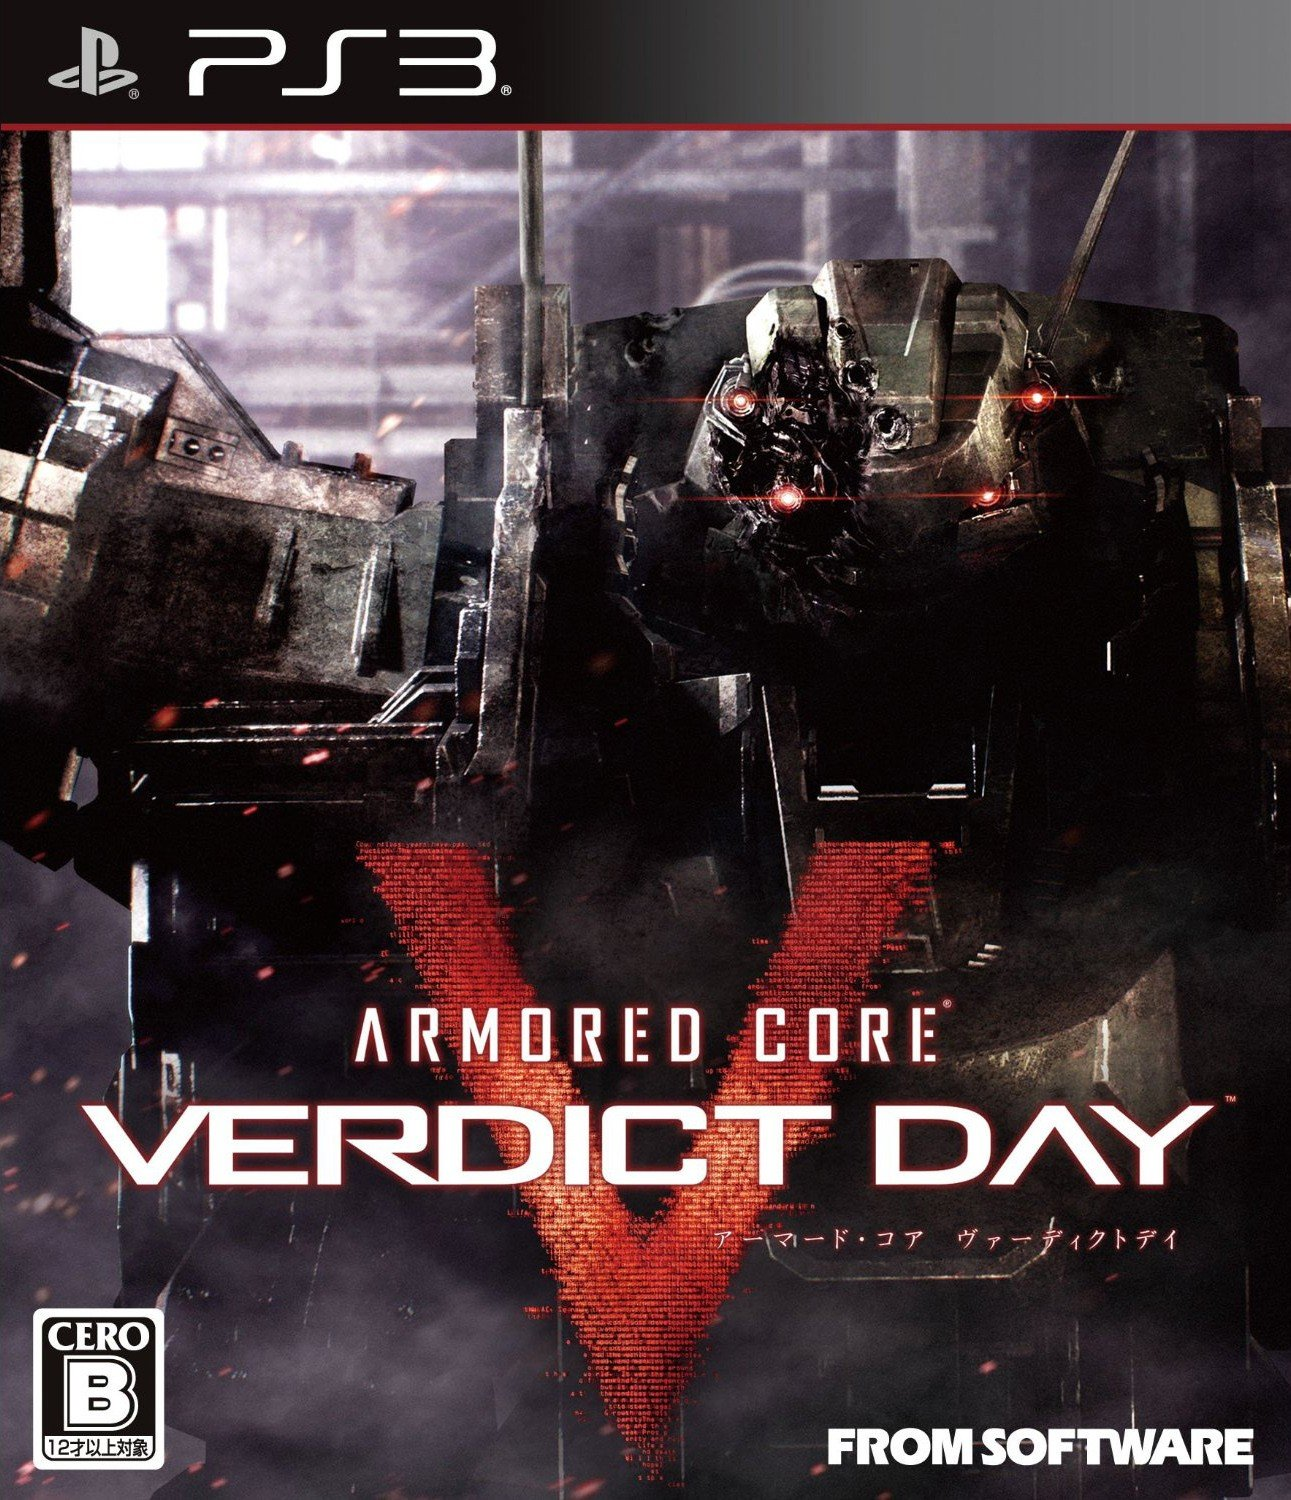 ARMORED CORE VERDICT DAY 装甲核心5审判日